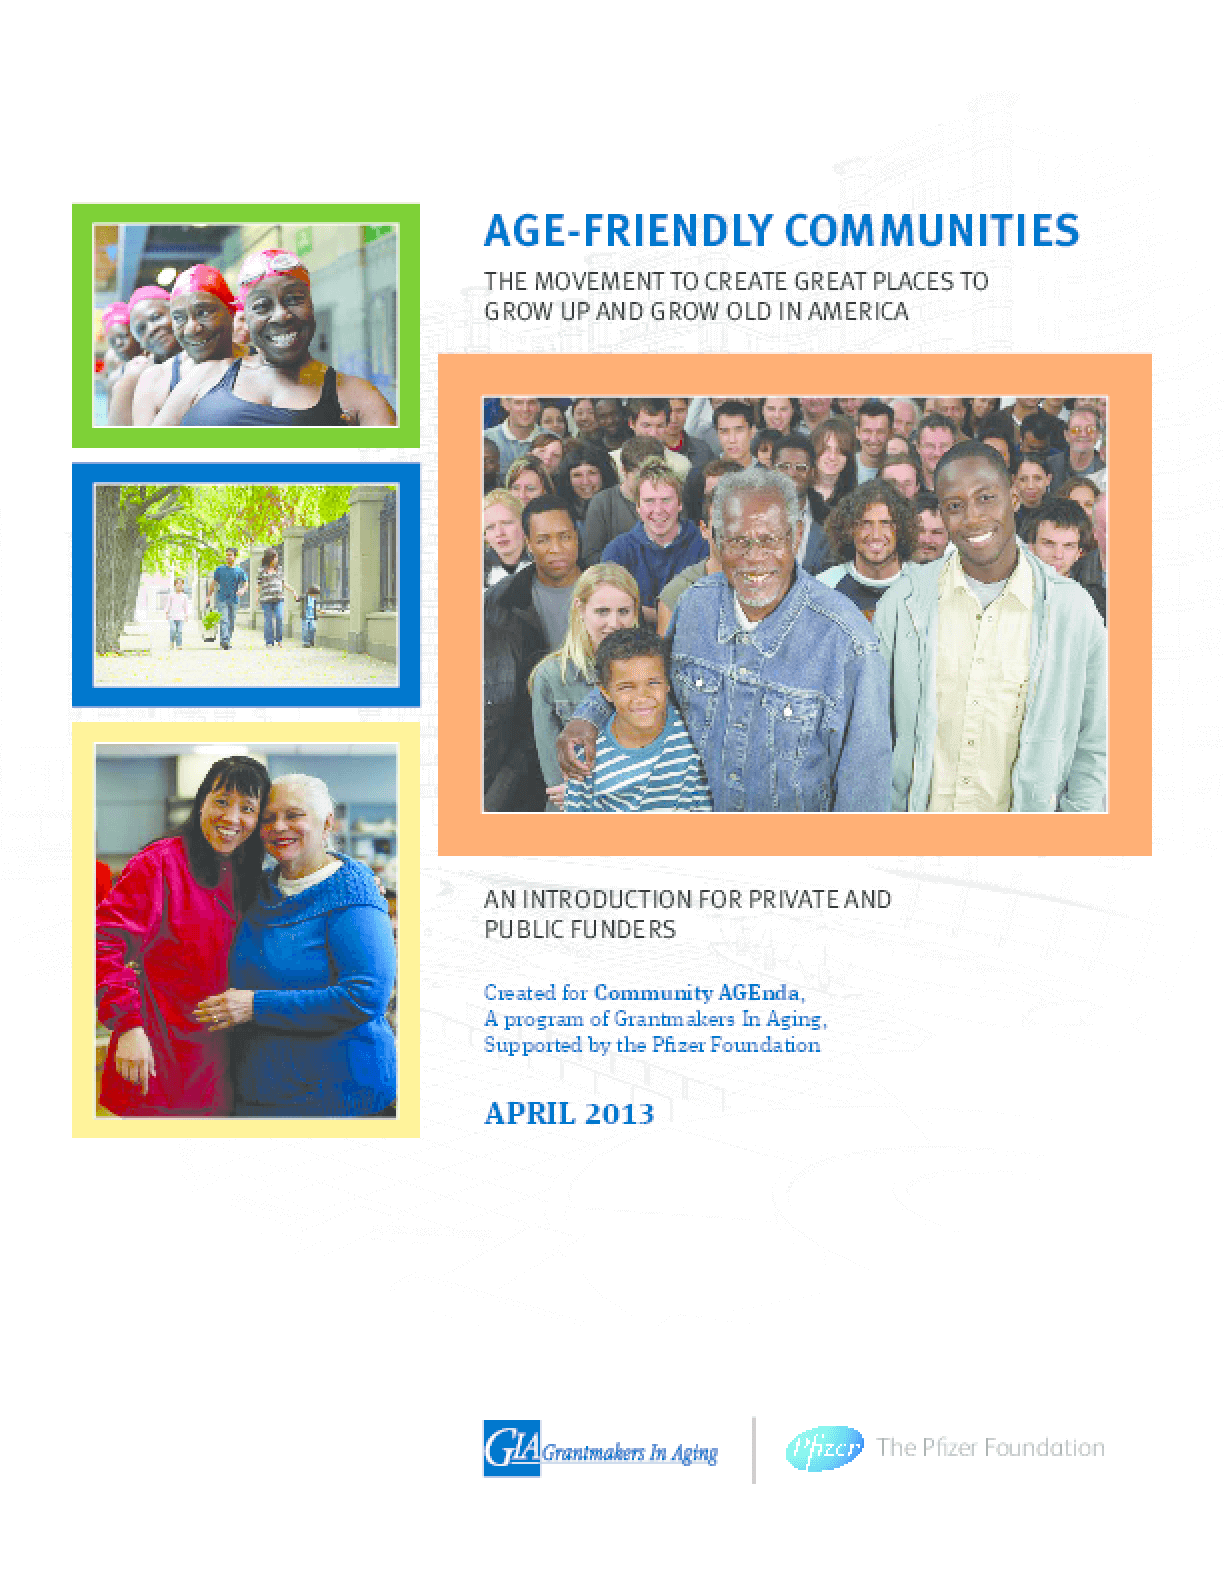 Age Friendly Communities: The Movement to Create Great Places to Grow Up and Grow Old in America. An Introduction for Public and Private Funders.